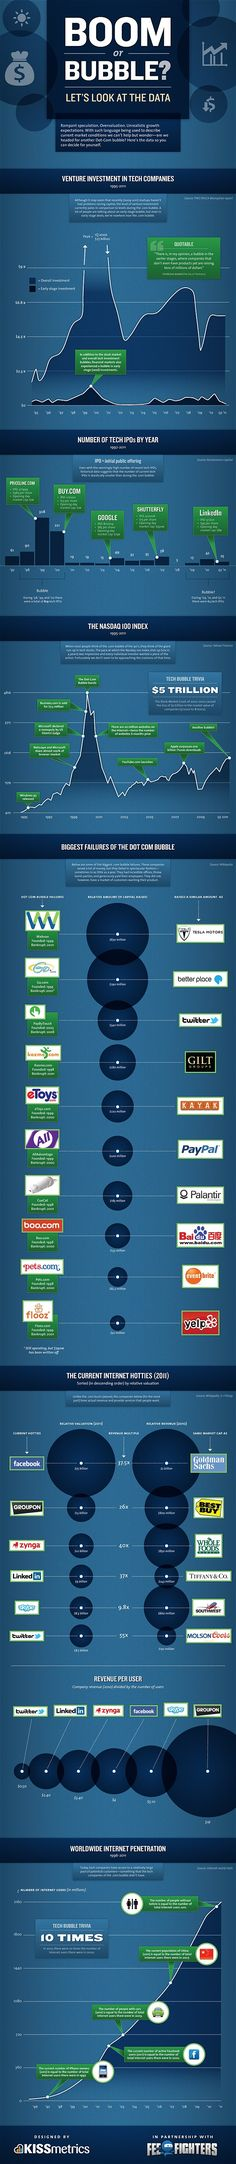 Tech Boom or Bubble? (infographic)